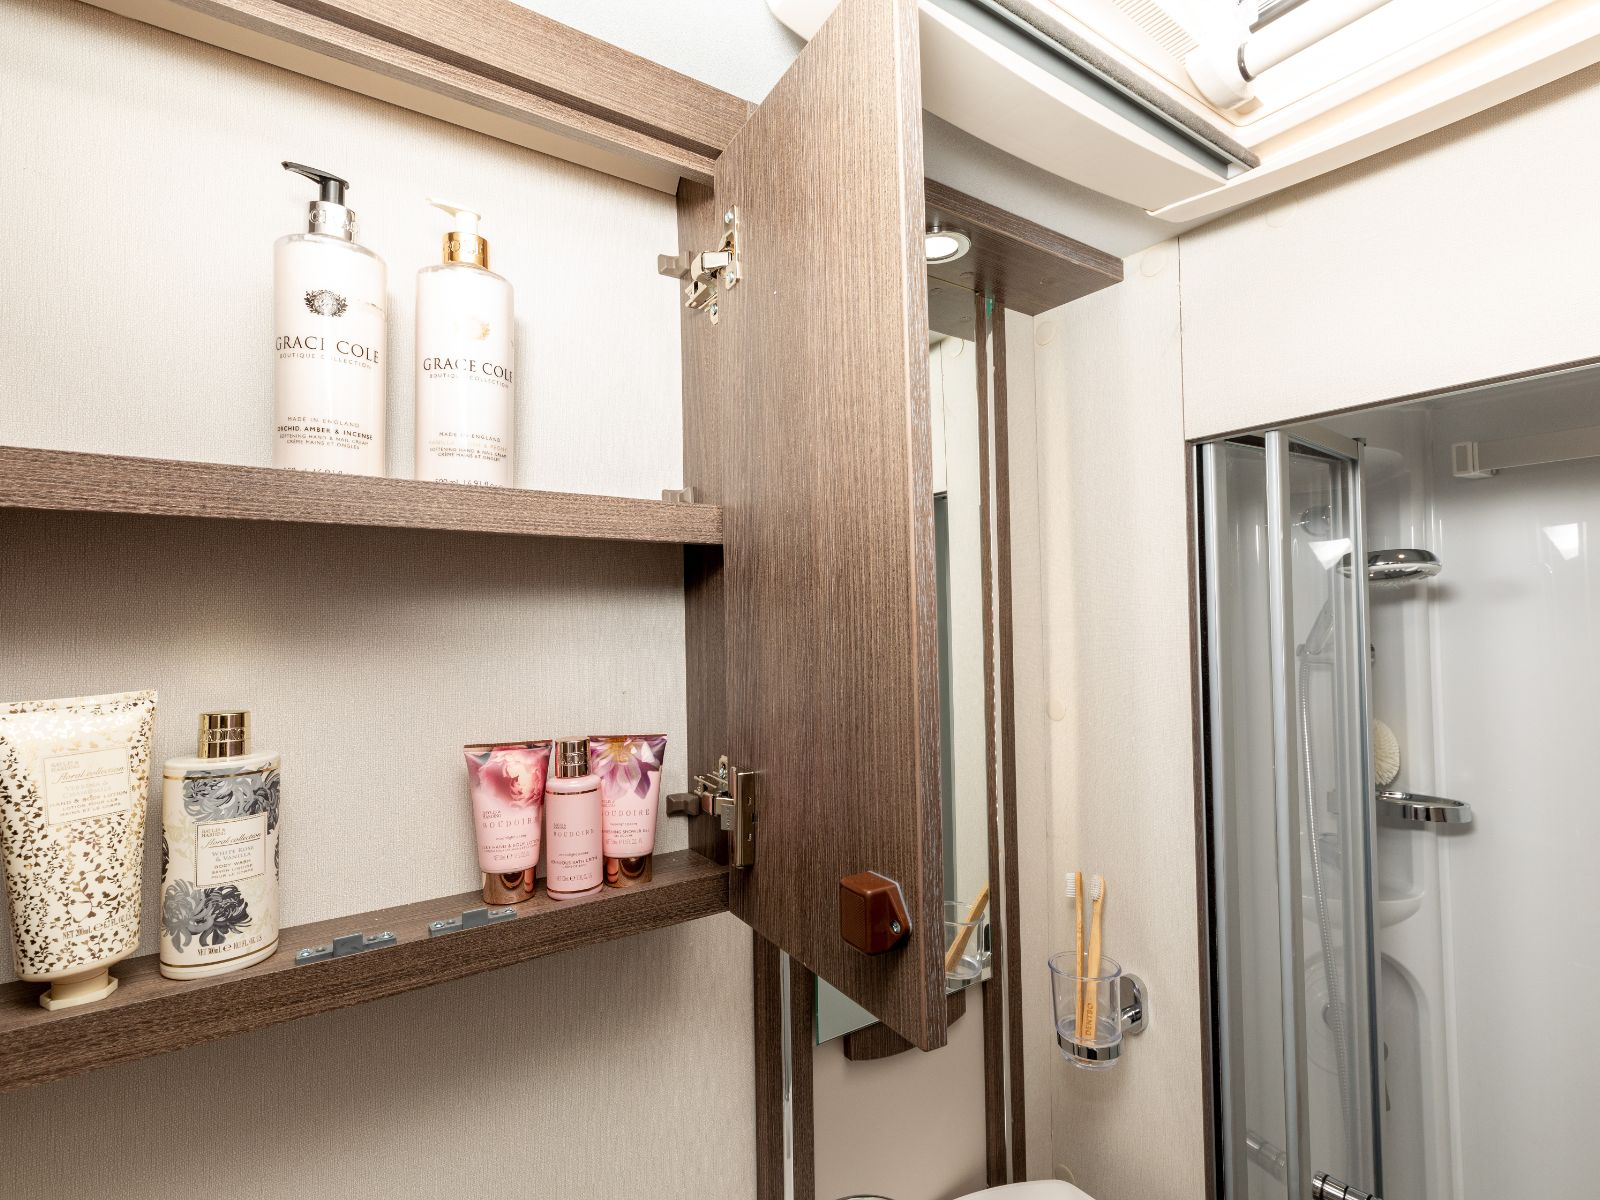 Toiletry storage cupboard with shower in background'